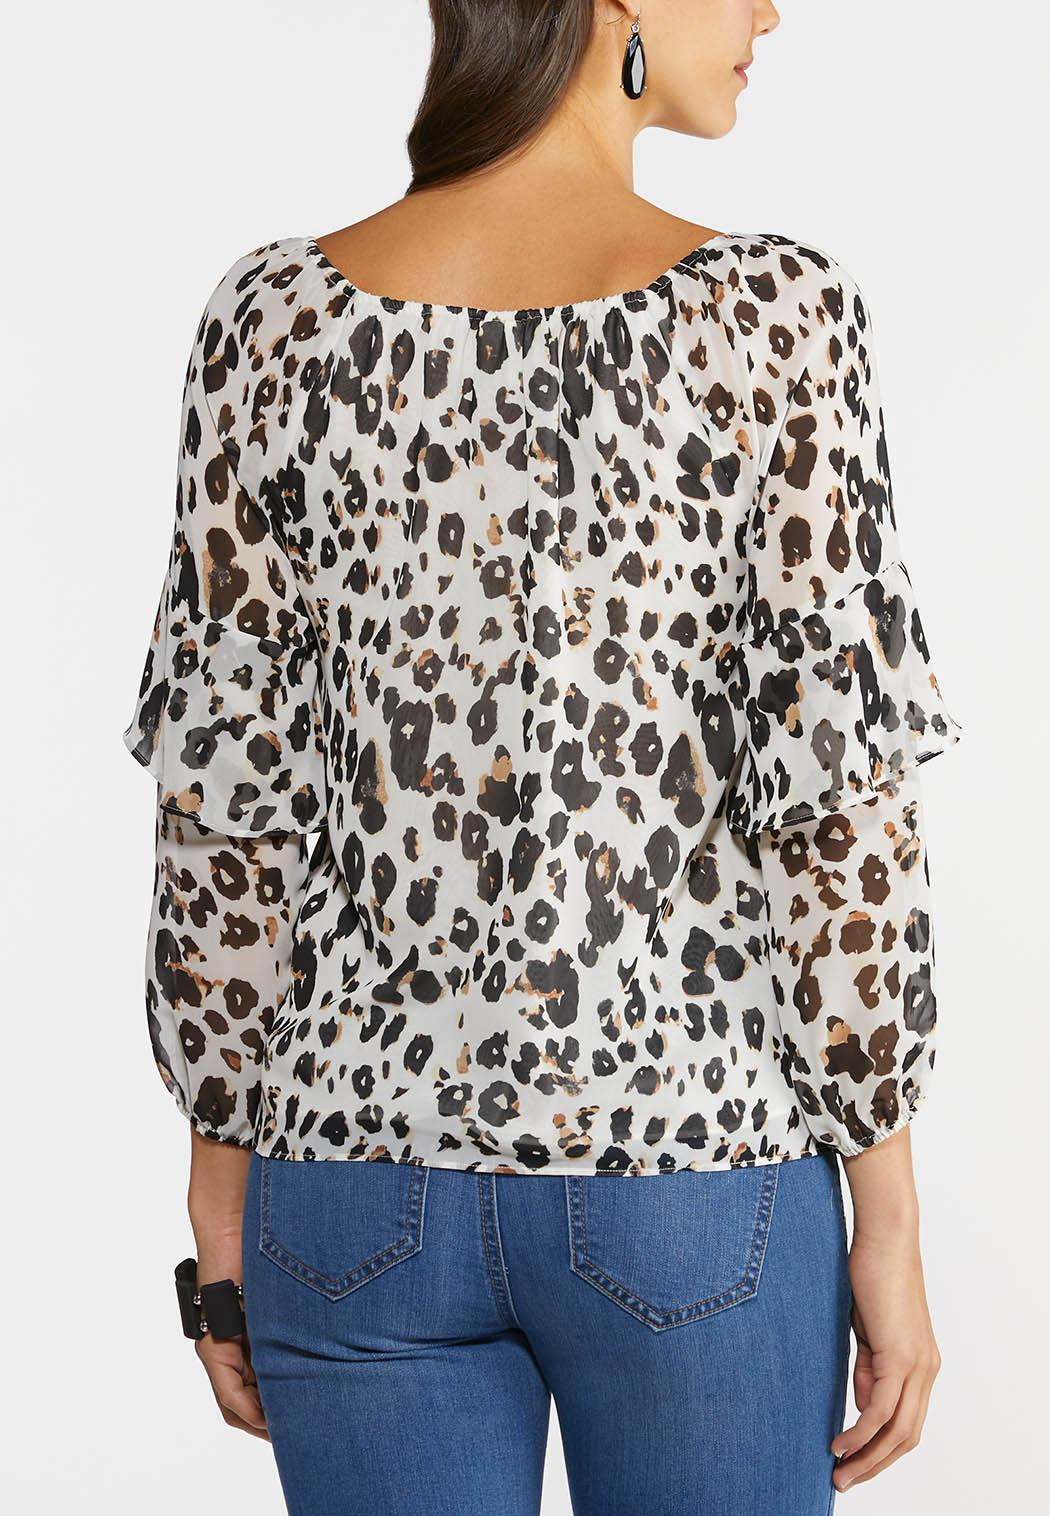 Ruffled Leopard Top (Item #44278306)